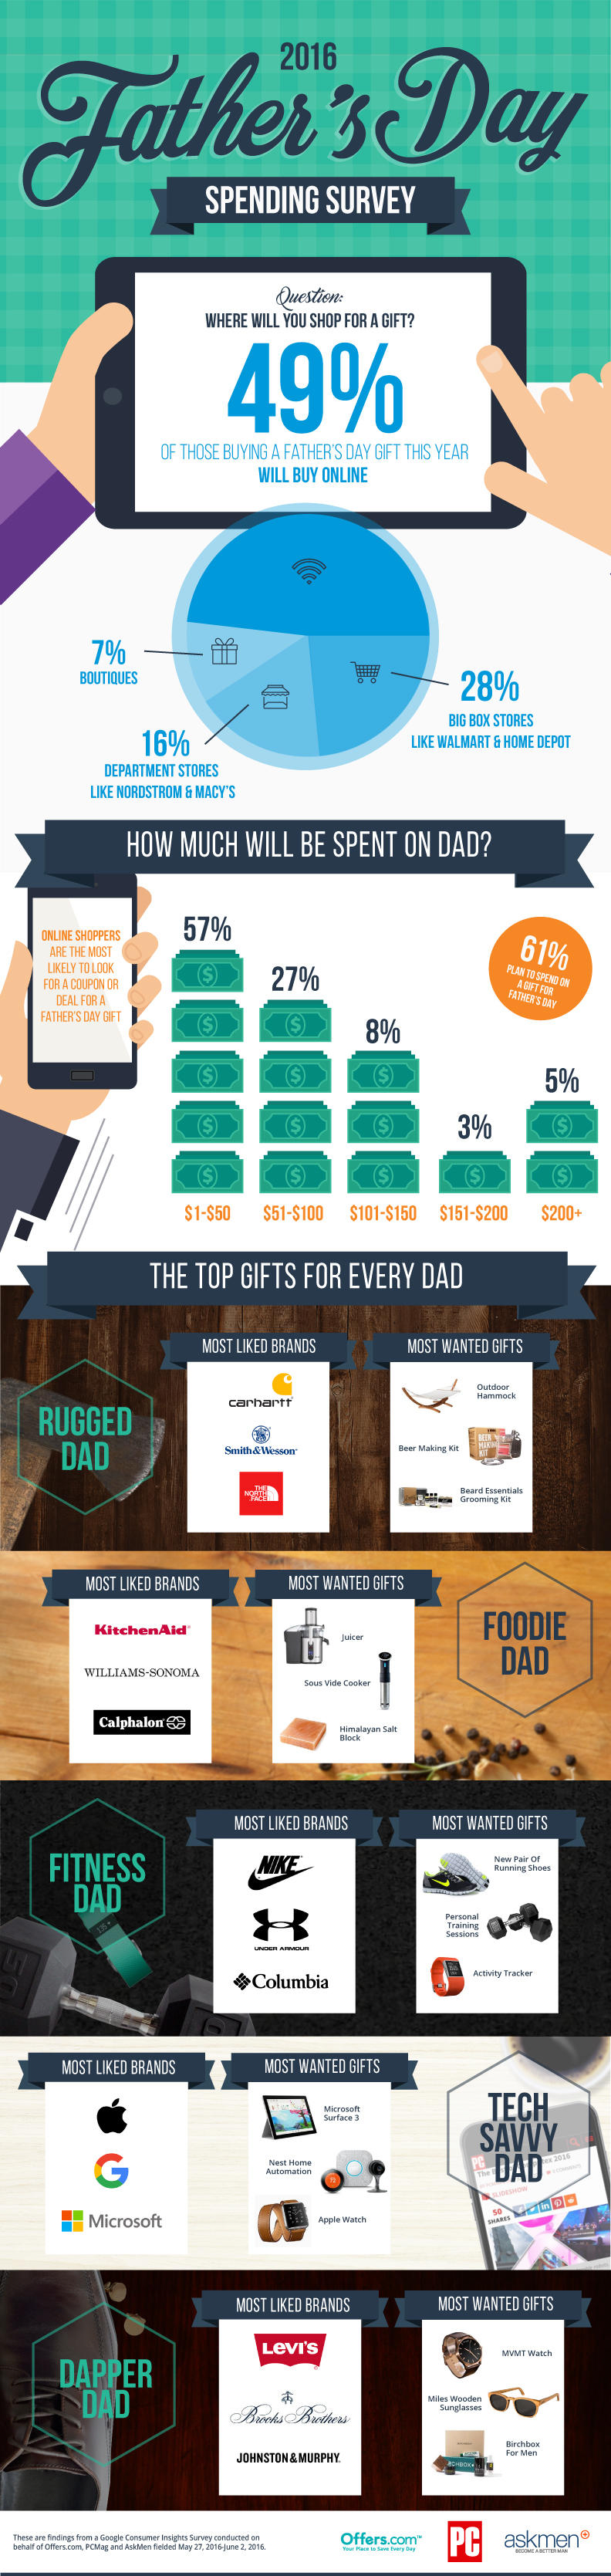 2016 Father's Day Spending Survey